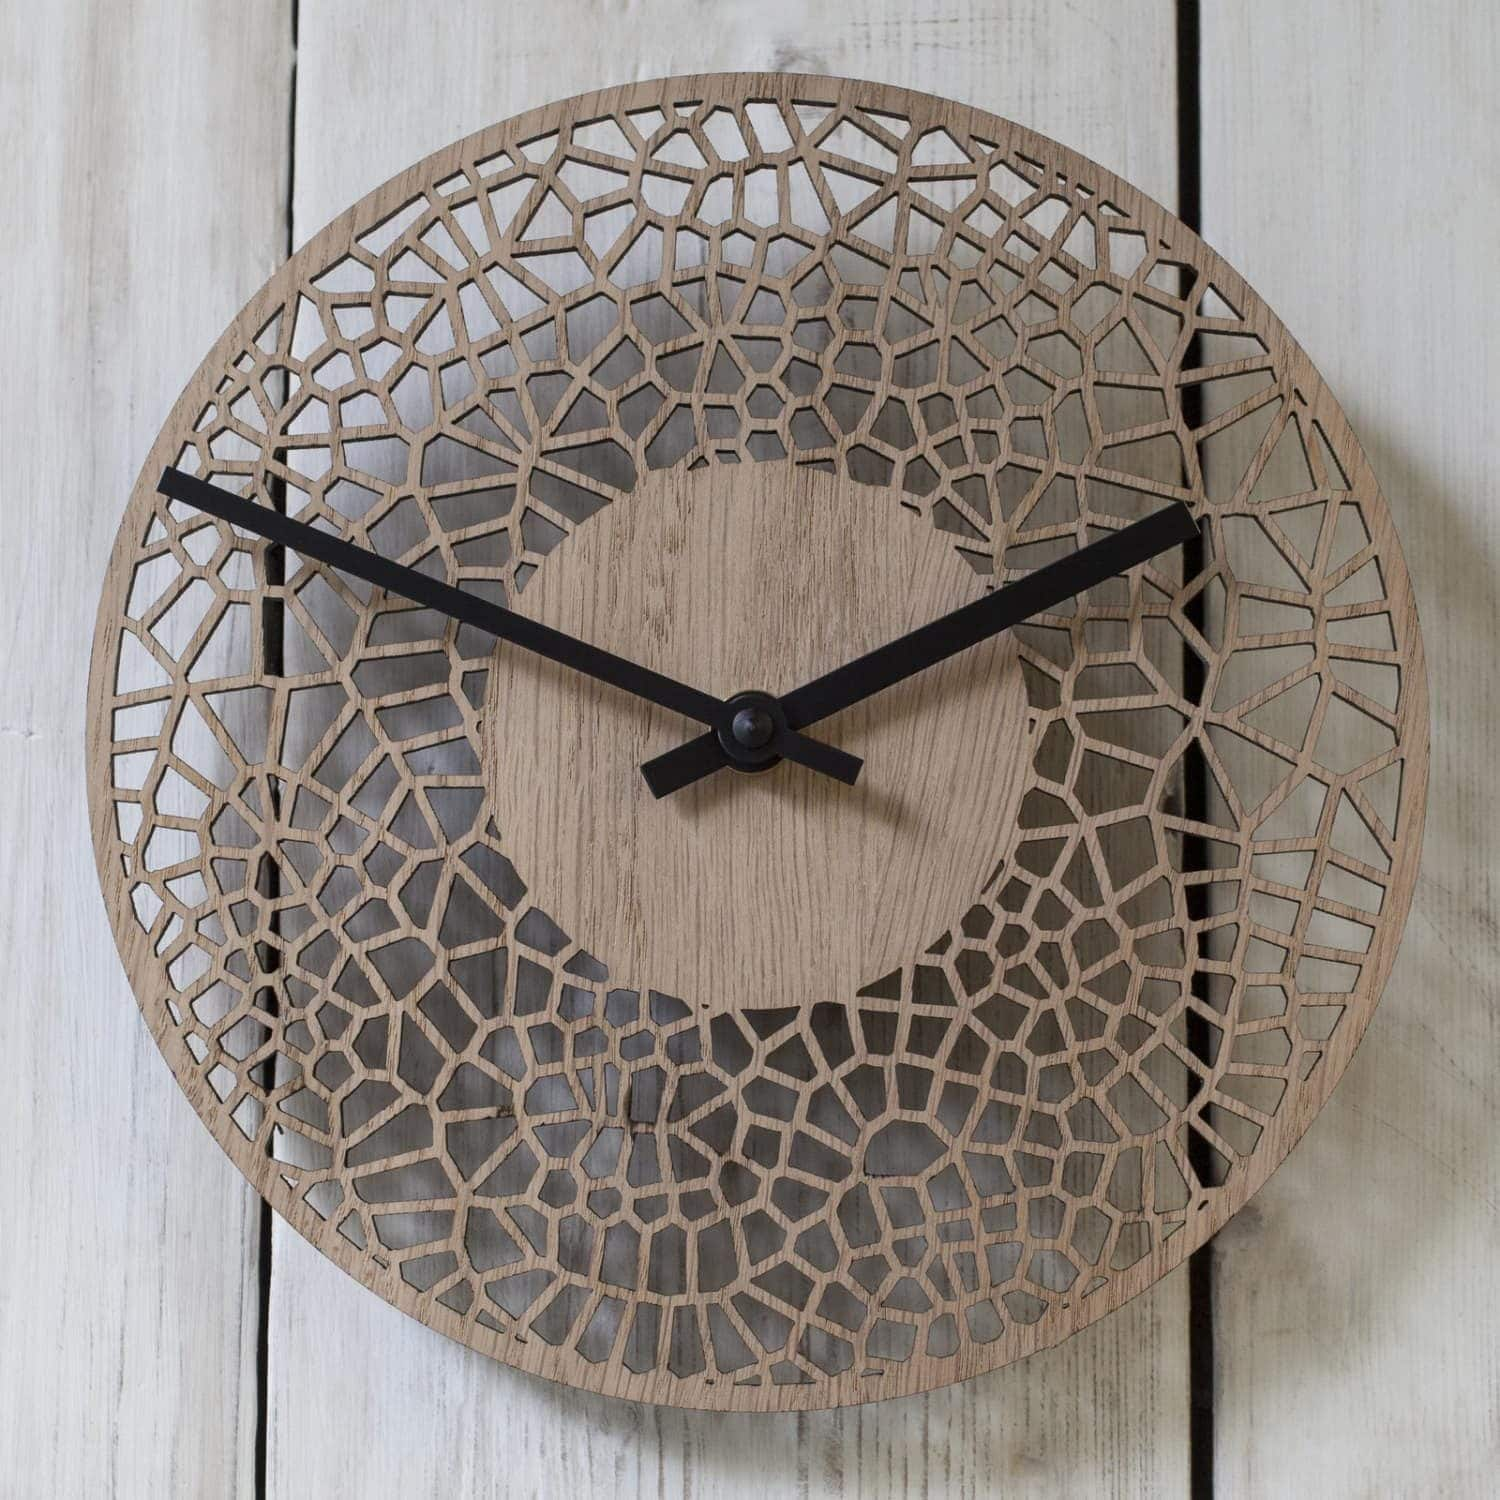 Contemporary small CELL CLOCK (20cm) - real wood veneer - oak or walnut